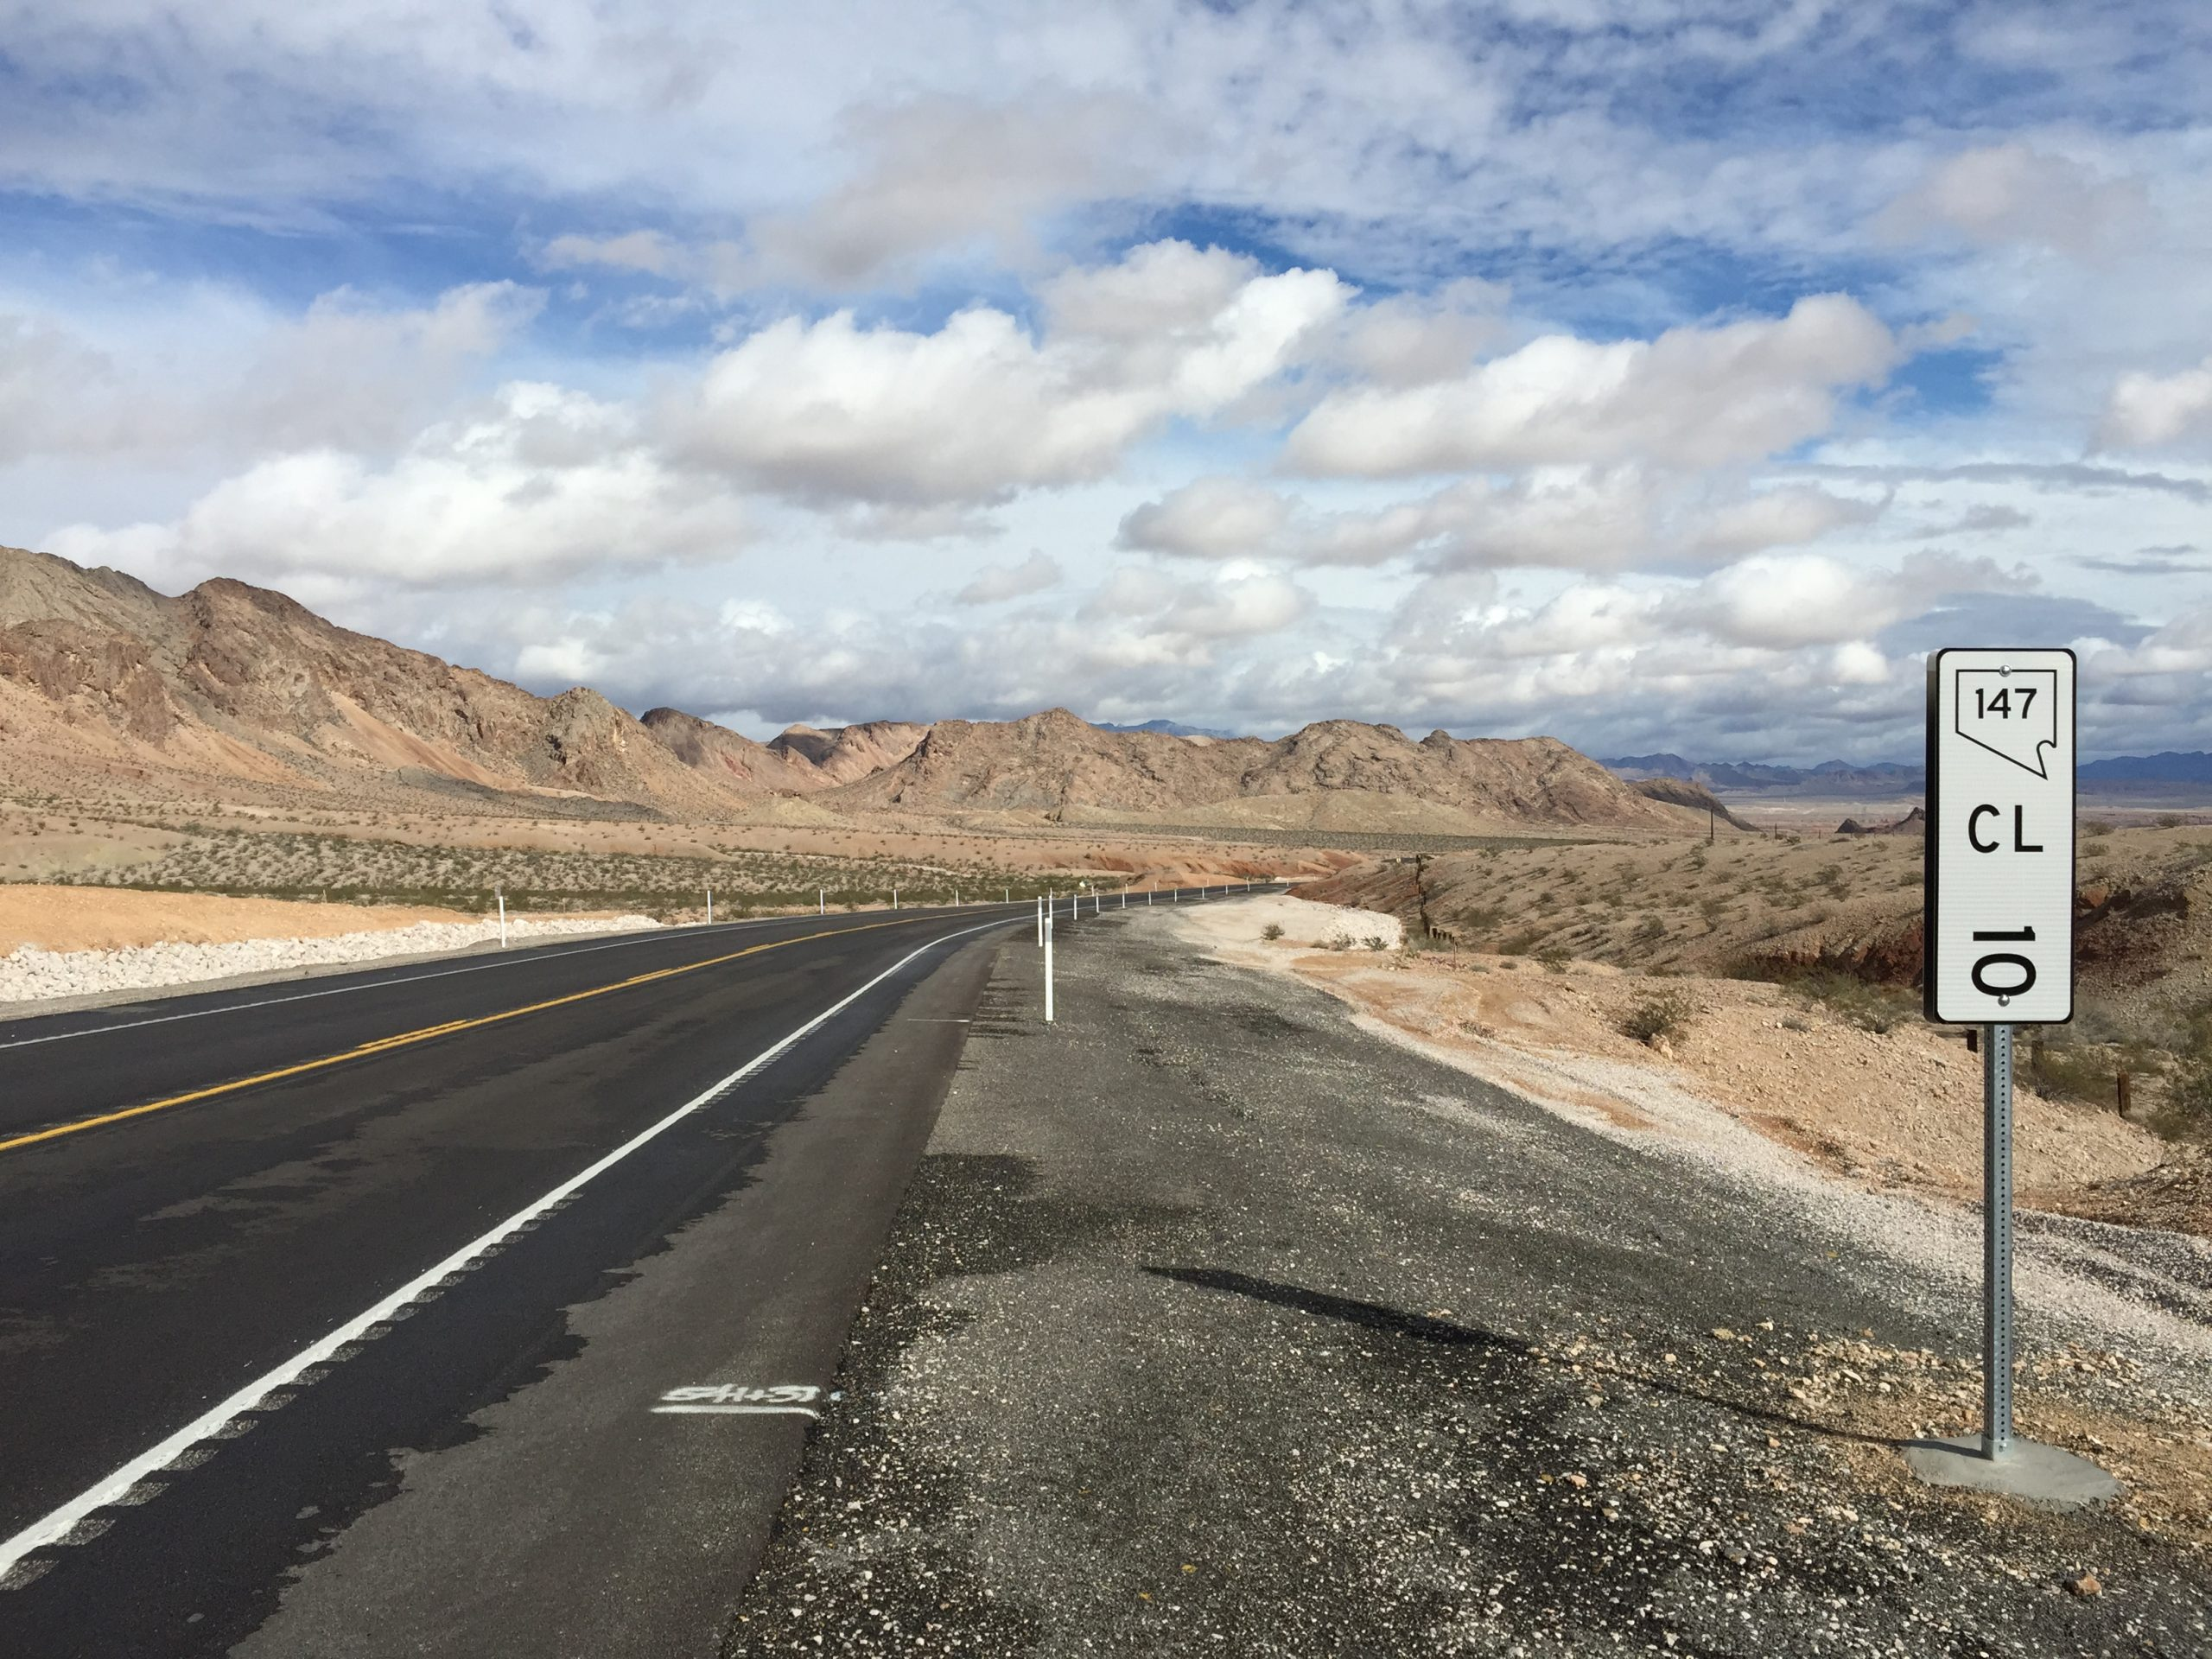 Nevada Condition Route 147